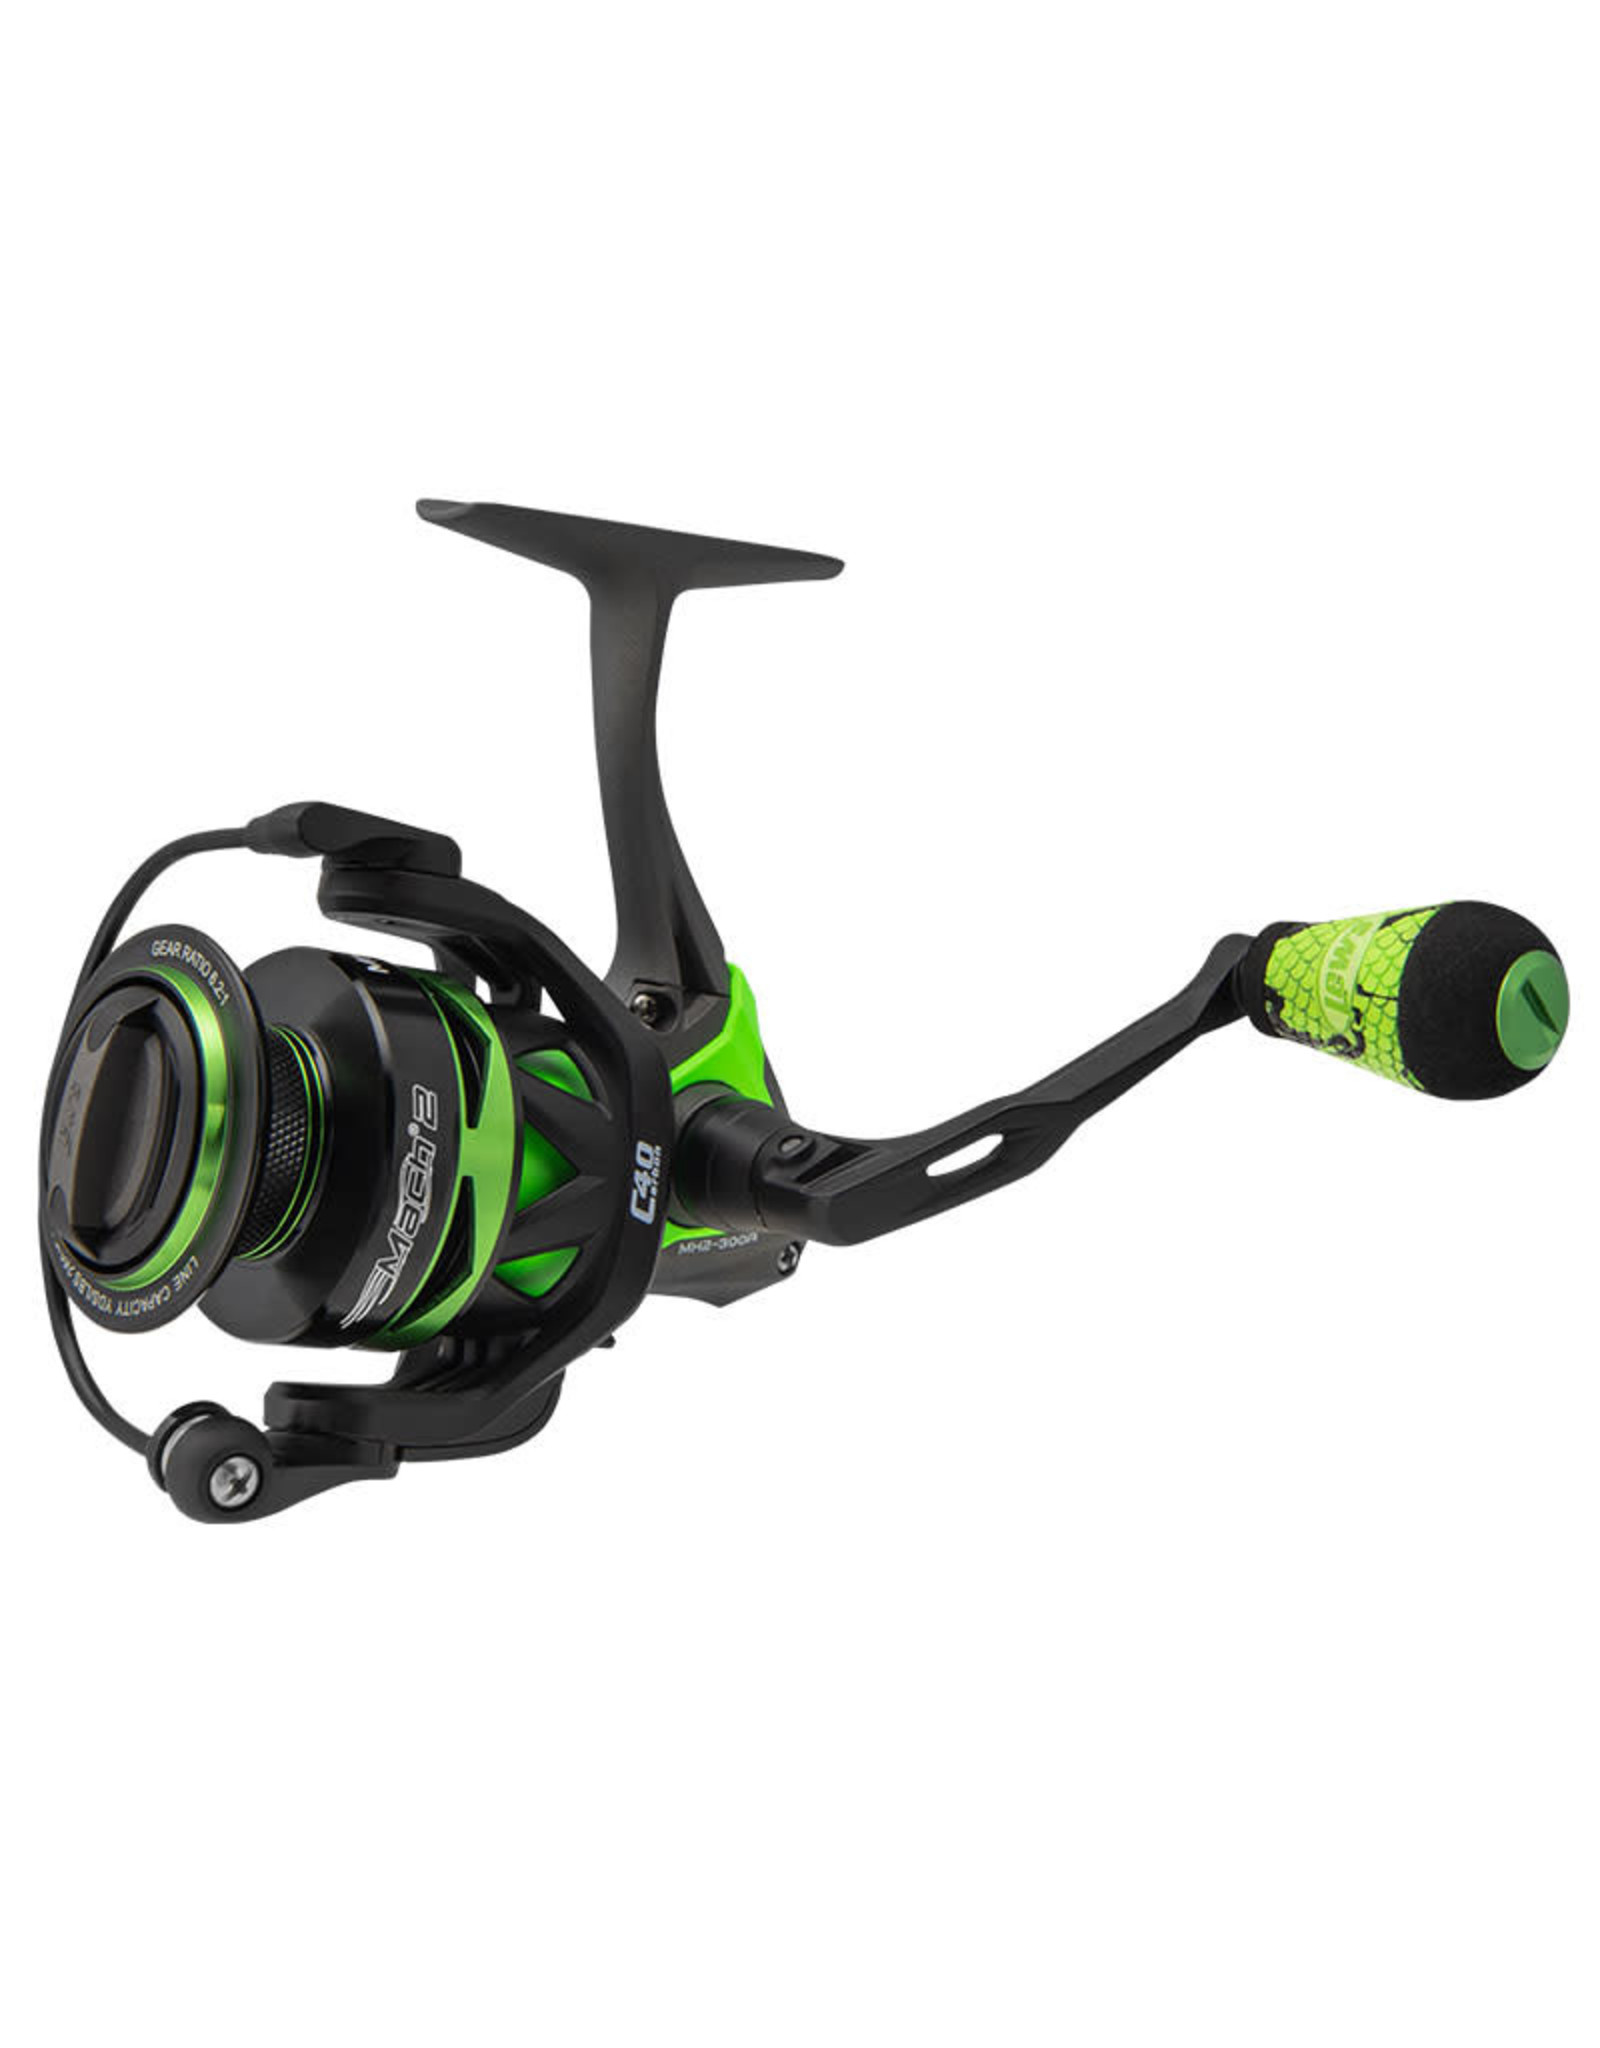 Lew's Lew's Mach 2 Spinning Reel